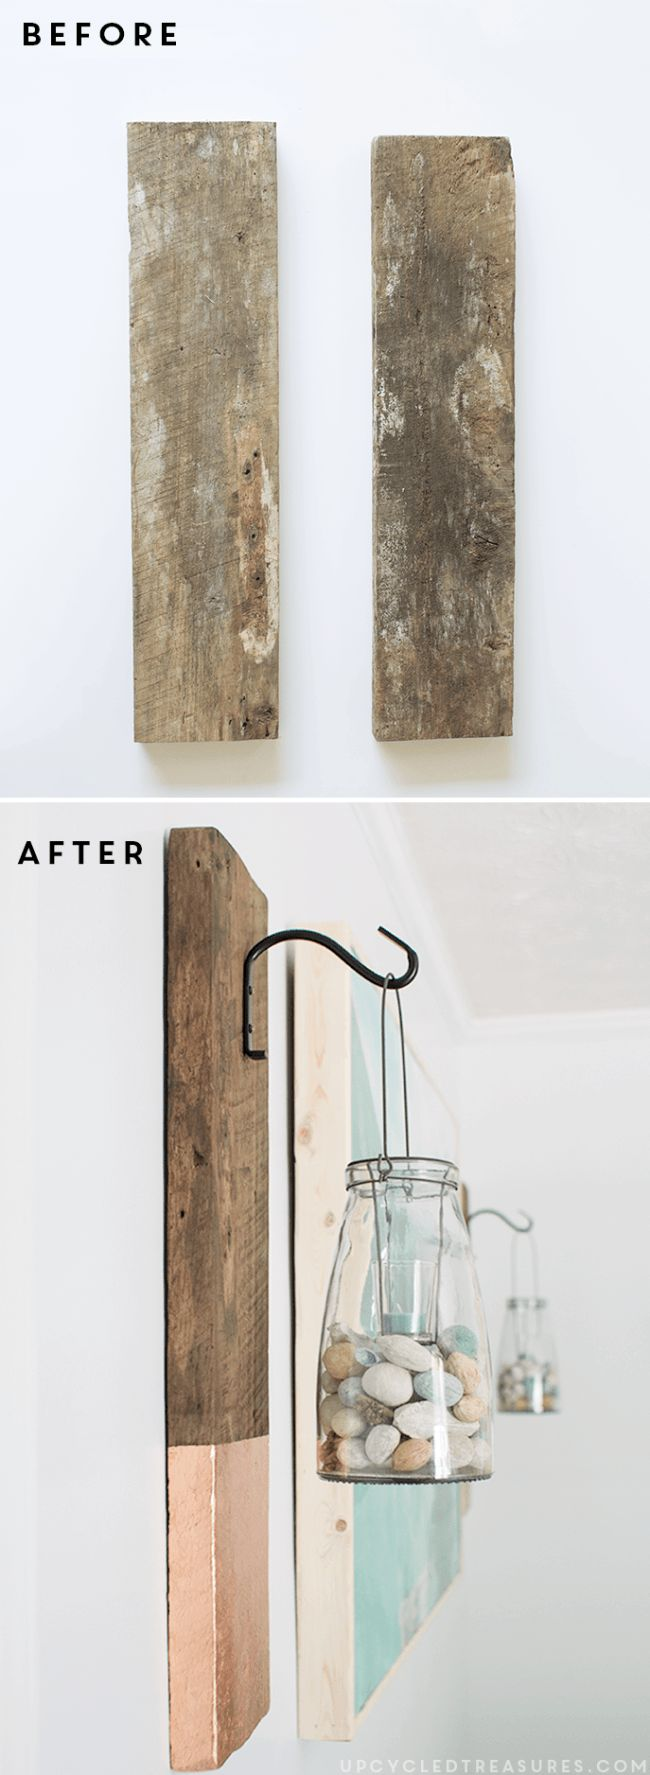 See how easy it is to create this vertical DIY Modern Rustic Wall Hanging from salvaged wood | upcycledtreasures.com